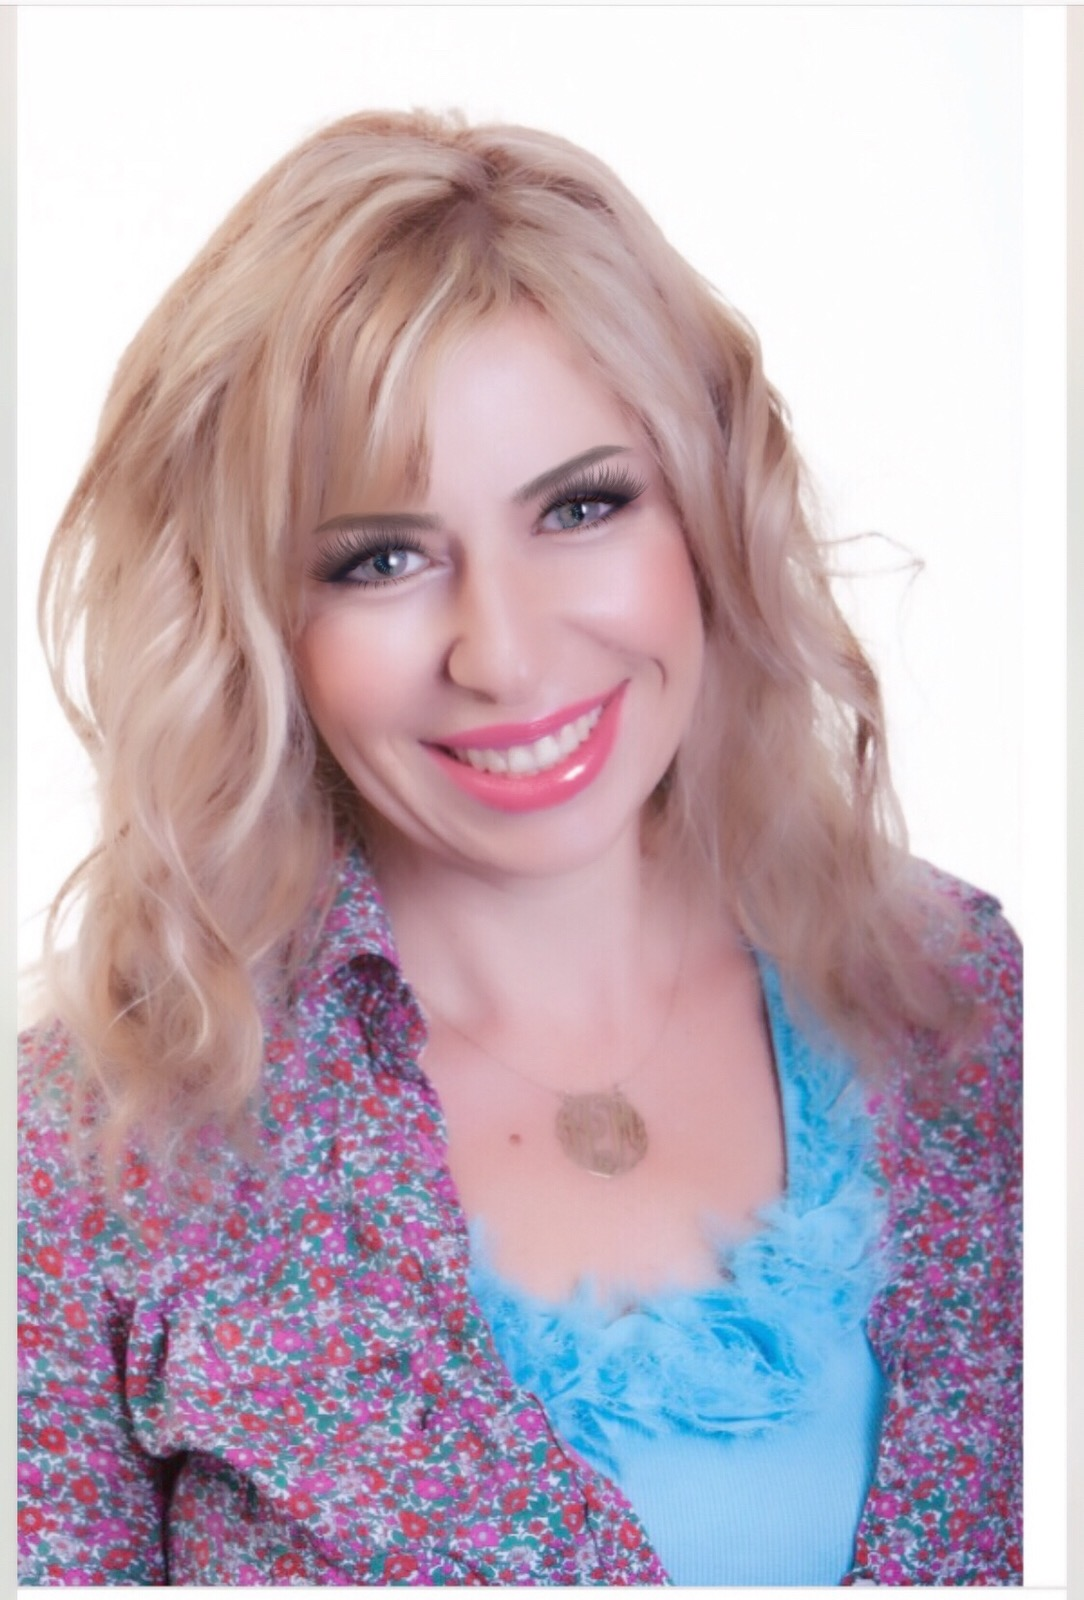 How Can I Help You Live Life to Your Fullest Potential? - The passion I have for health and nutrition comes from my great appreciation of life.My goal is to empower you to live a vibrant life by teaching you how to have a healthy body, mind and spirit.I build powerful relationships with my clients and we work together to achieve your greatest health dreams. We start out by exploring your goals and coming up with scientific strategies for success. I am a busy woman, mother,friend, exercise fanatic and lover of life. I want to help you start thriving and feeling great, not just surviving on auto-pilot!